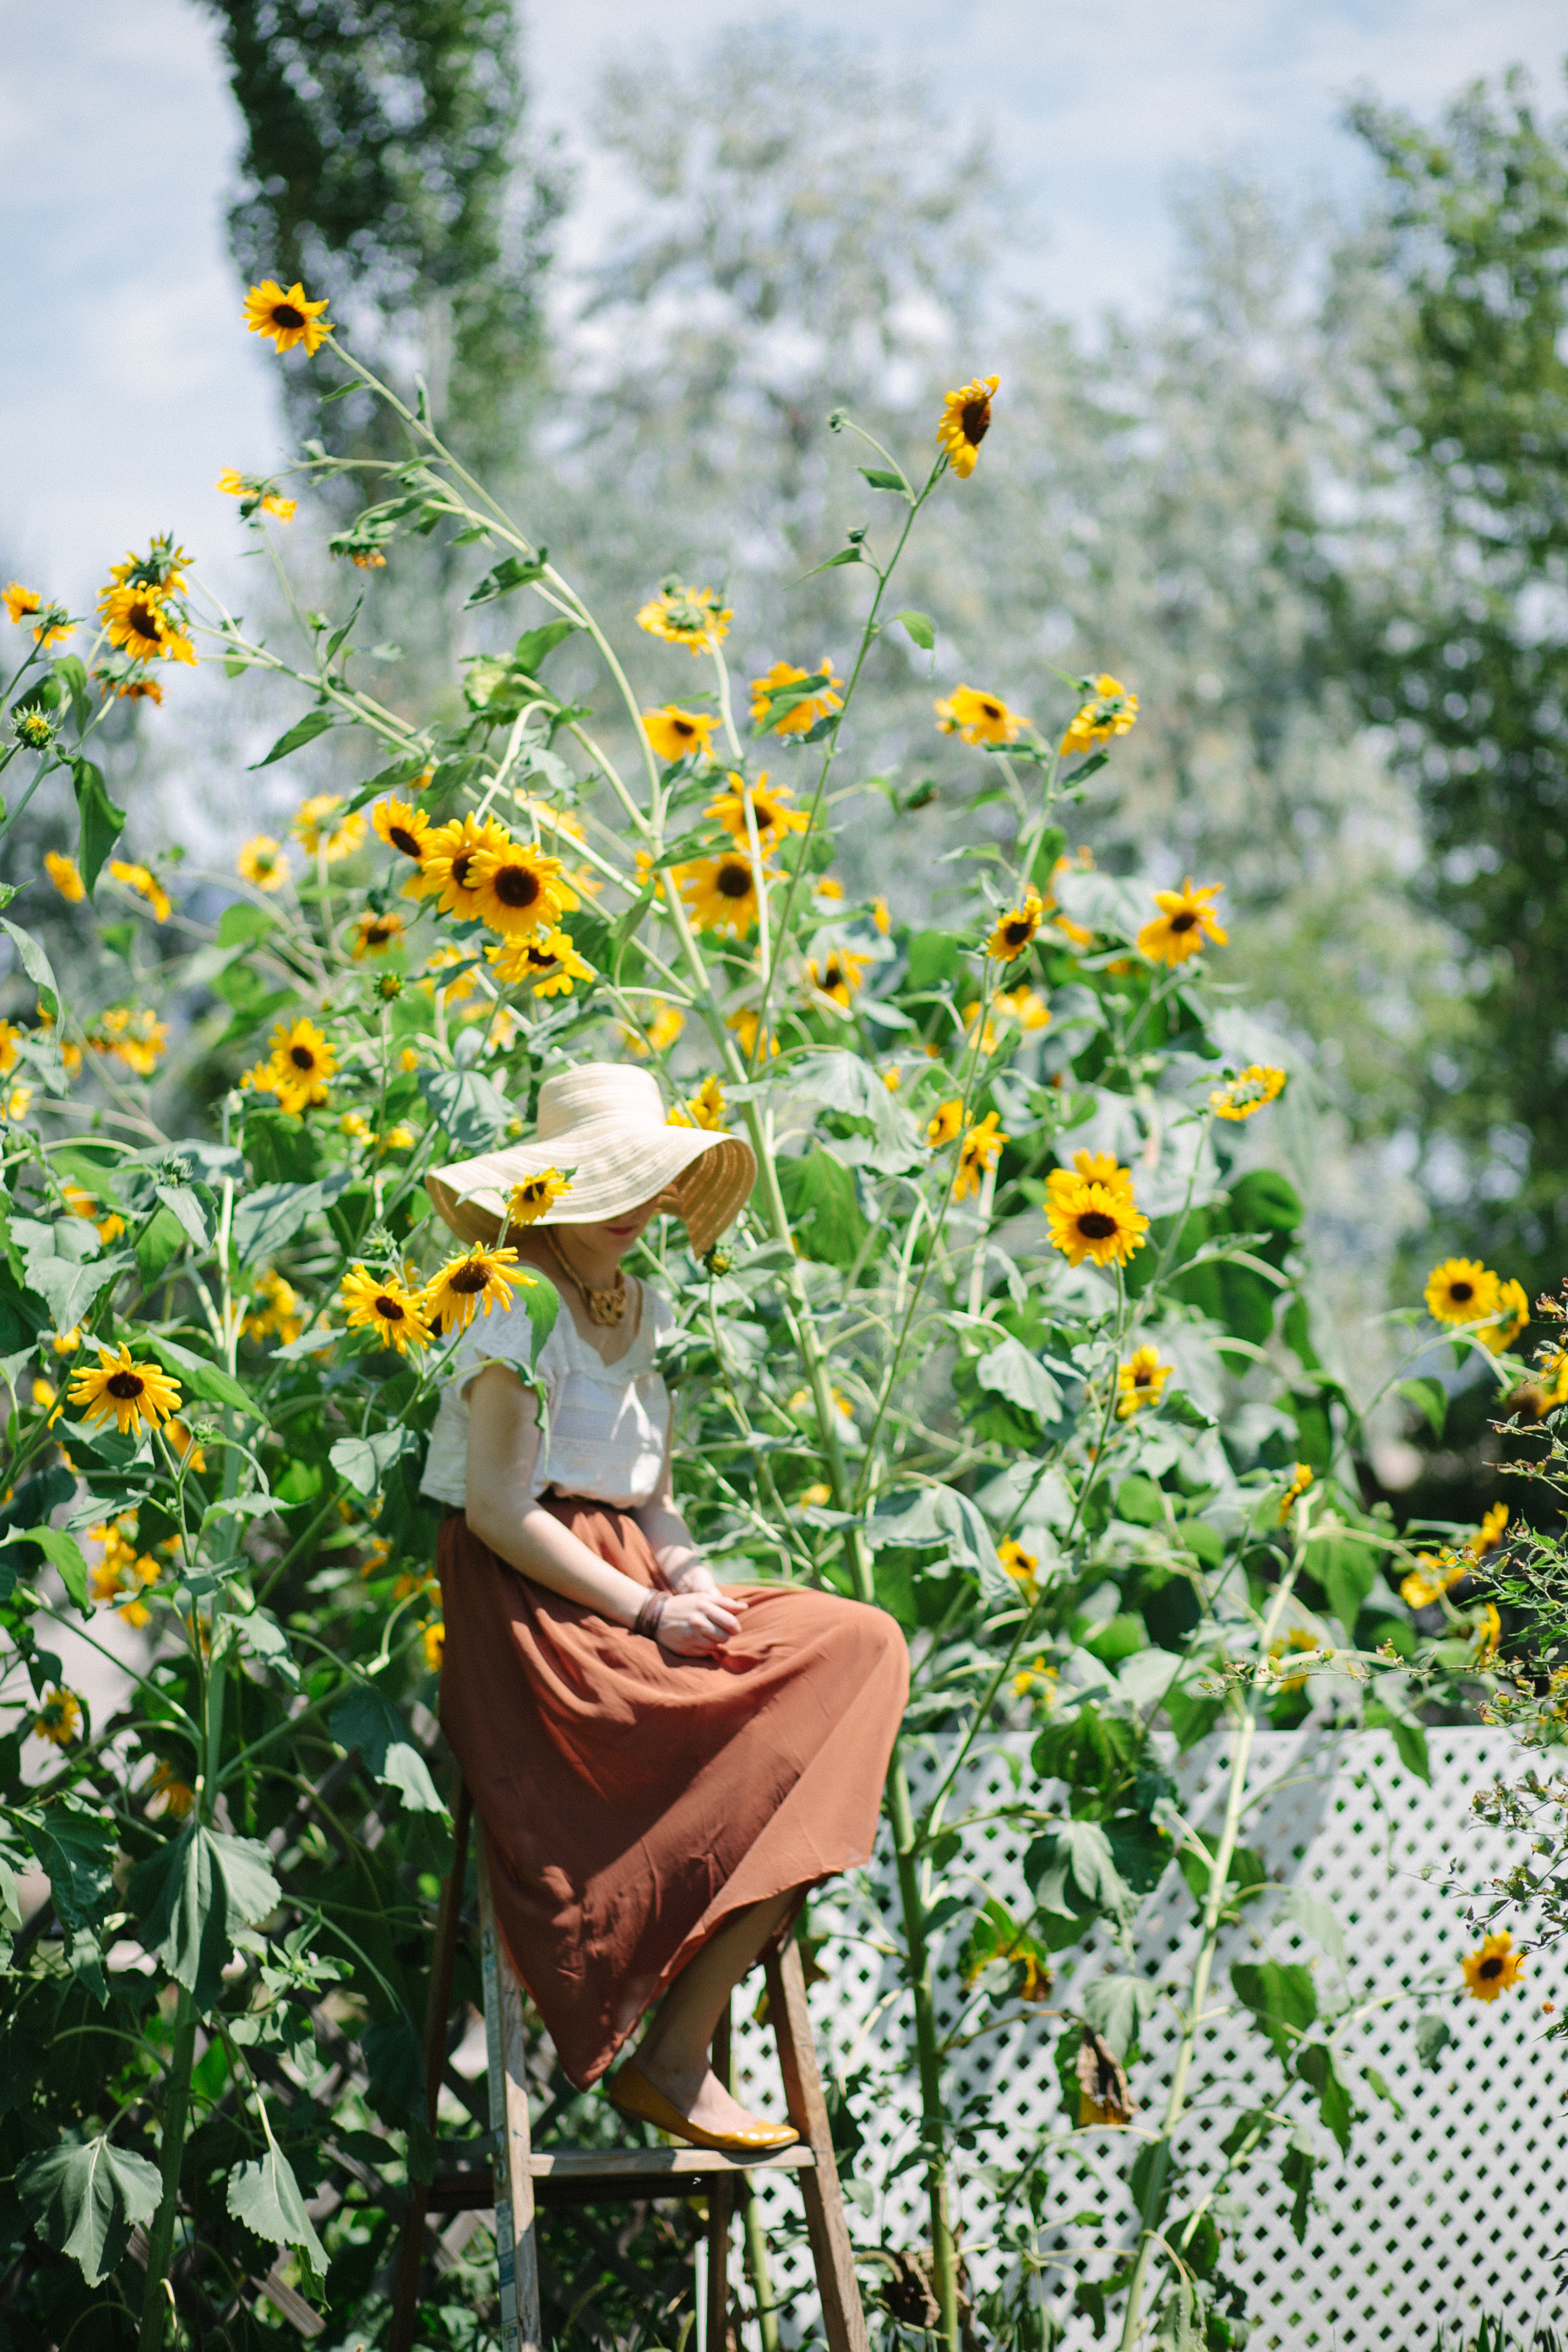 Erika Eddington by Ashley Thalman. Woman in sunflowers.